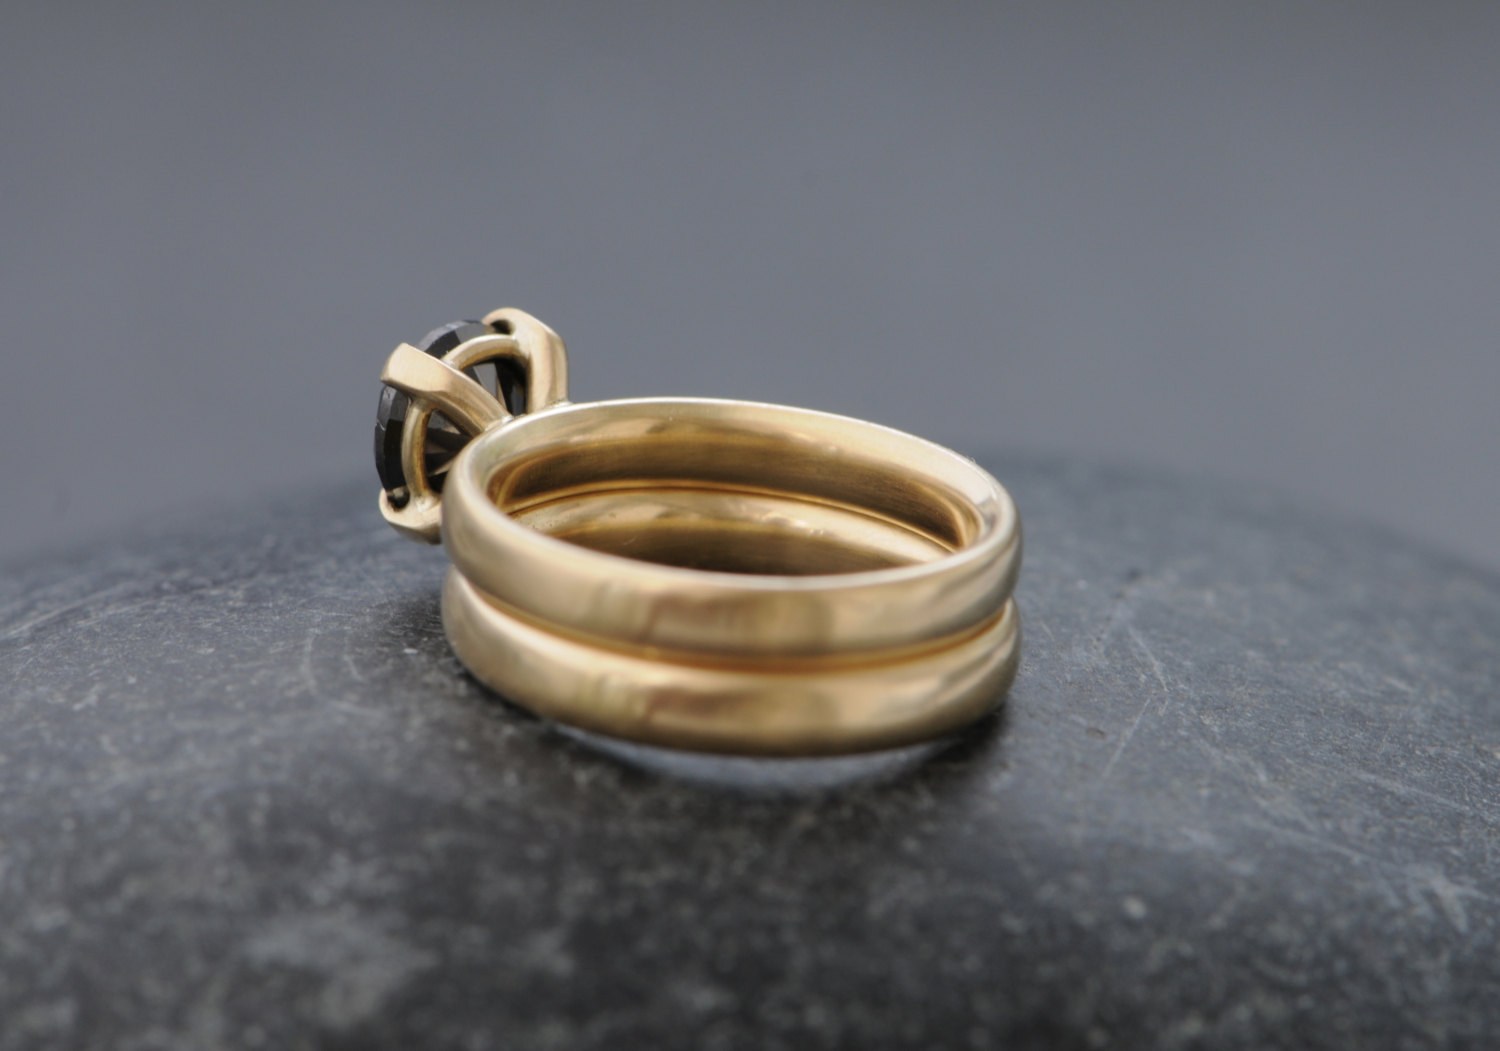 thin bancroft carat bands this wedding alice ring band made products polished gold